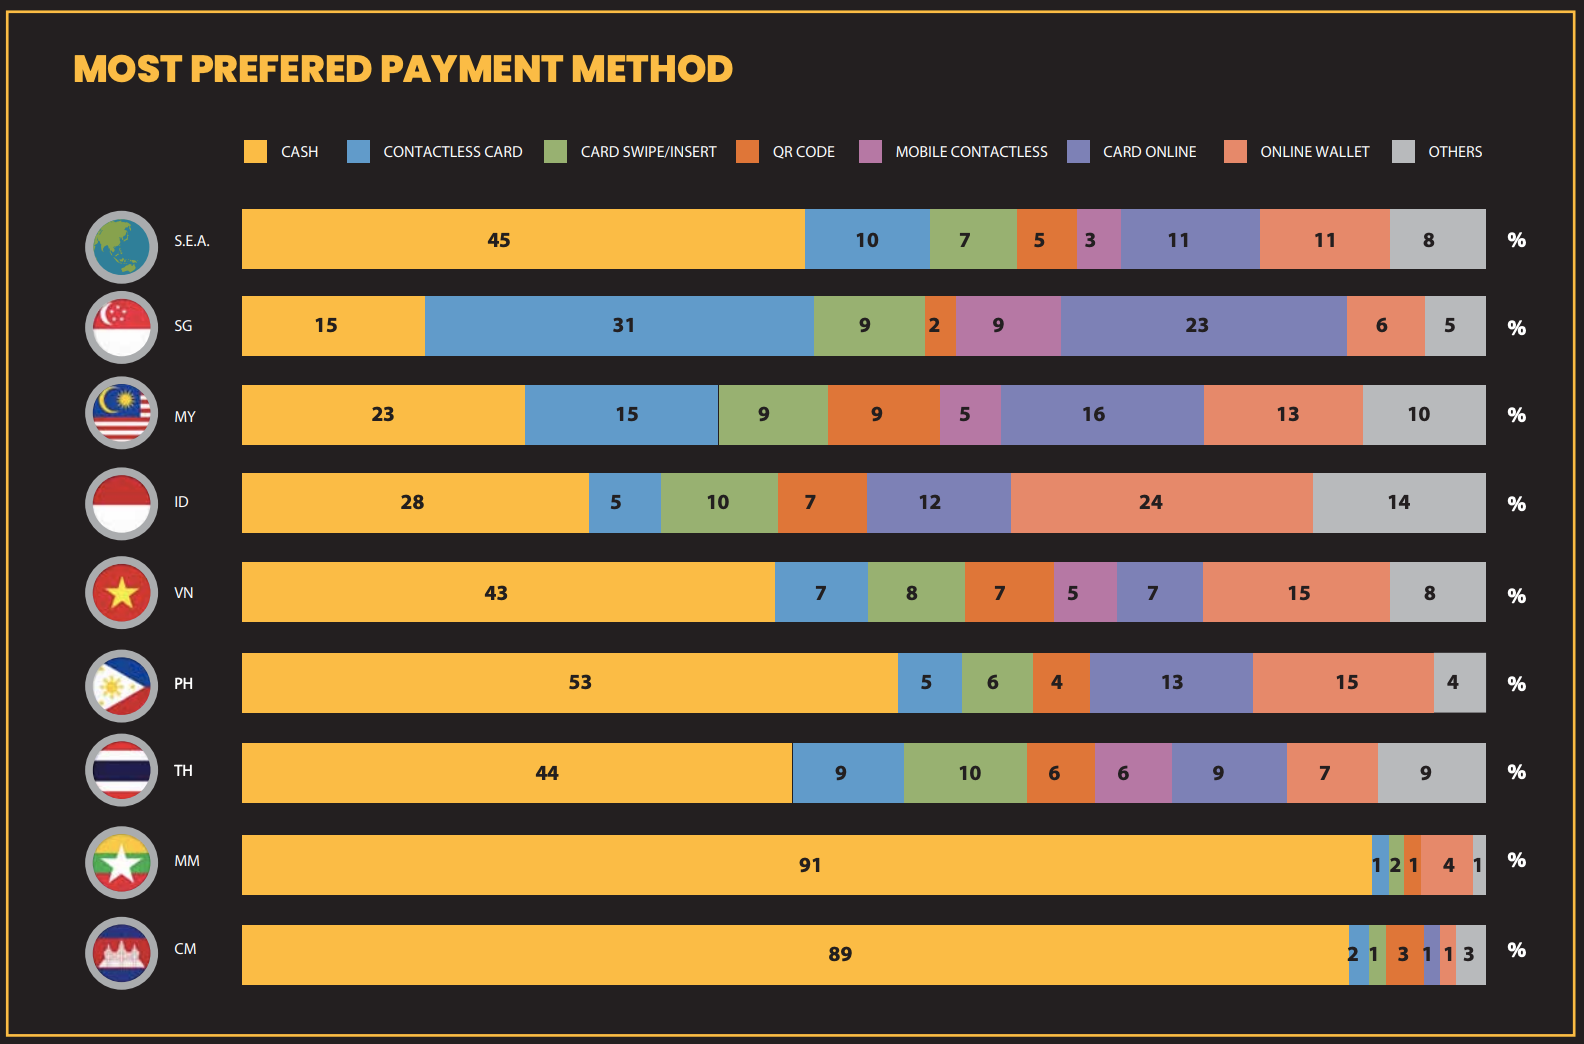 most preferred payment method in ASEAN